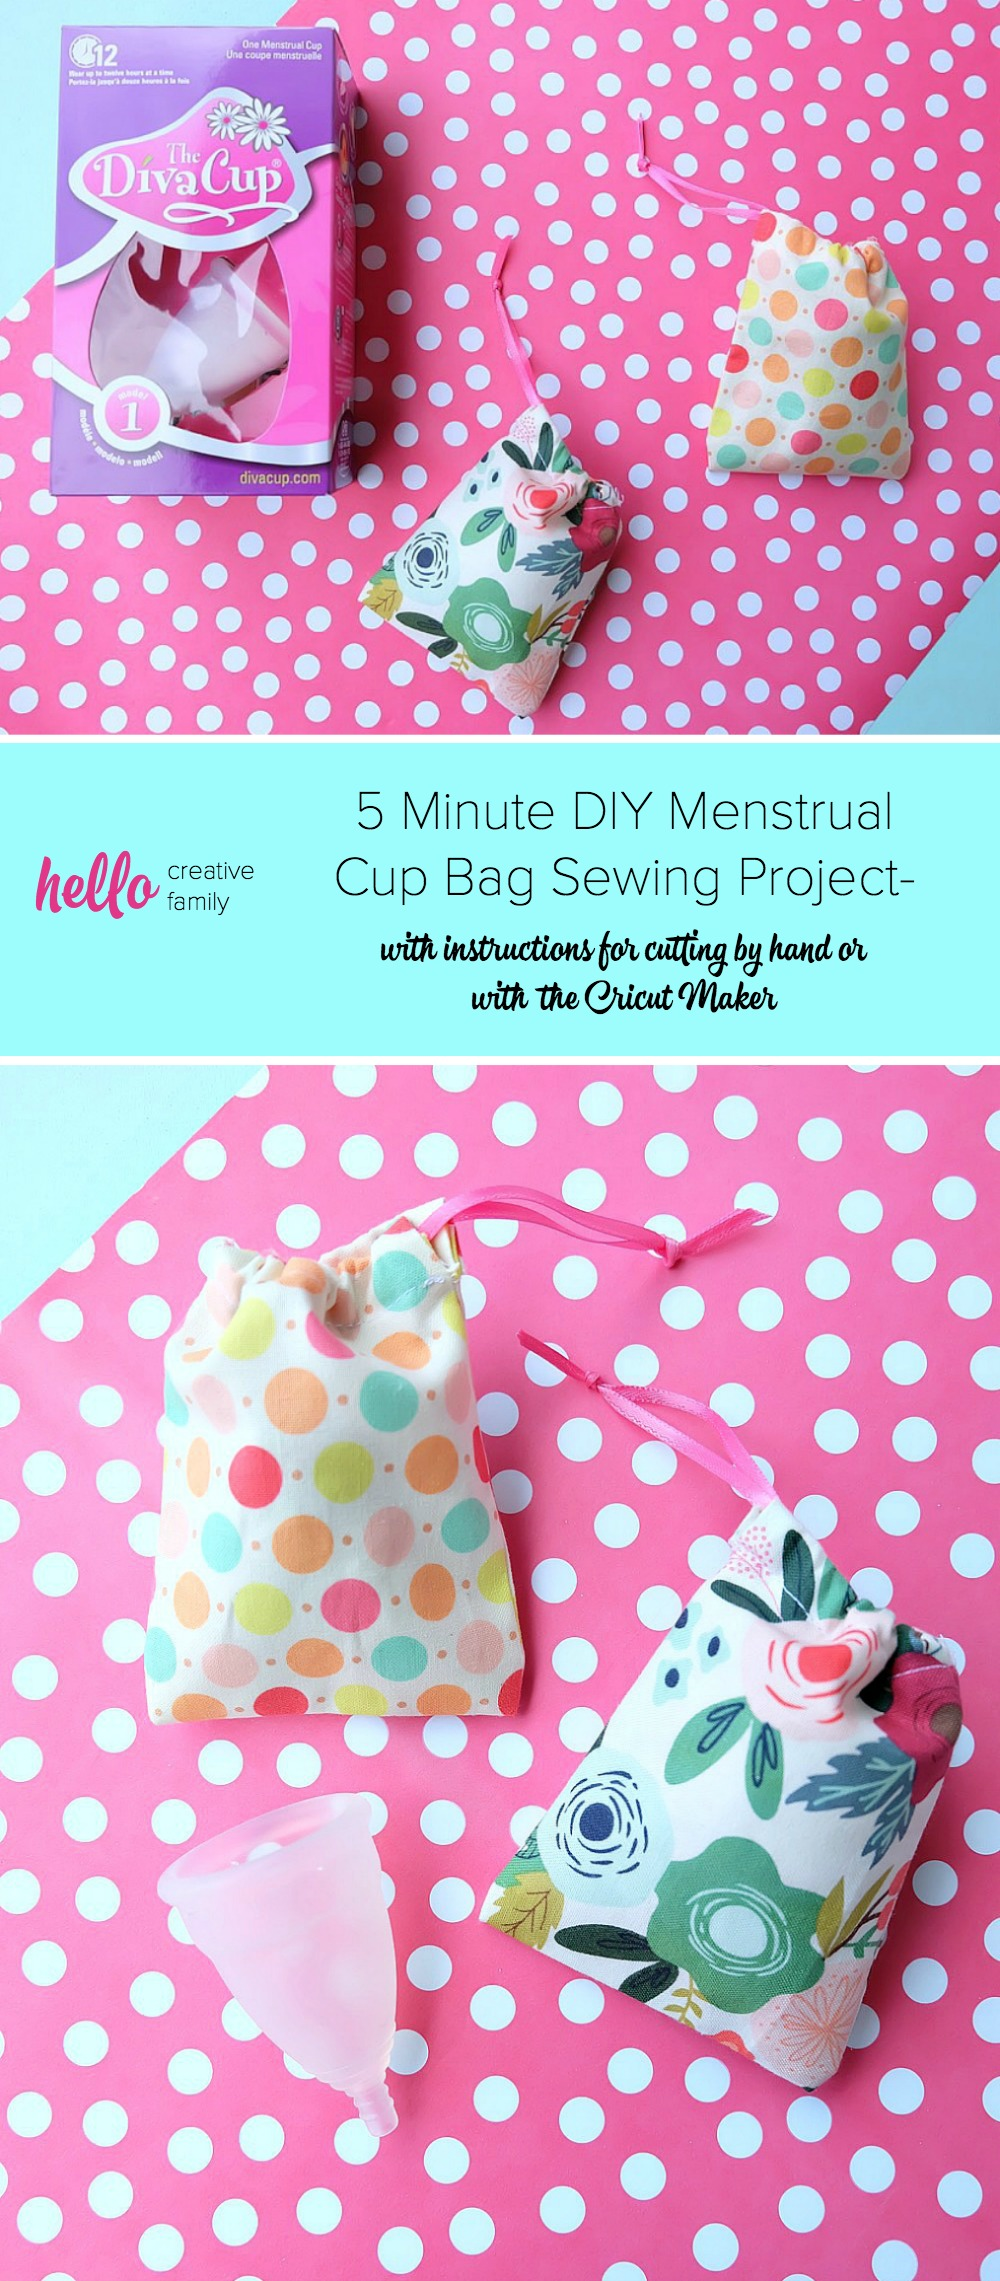 Make the cutest little DIY drawstring bag out of fabric scraps that's perfect for a Diva Cup, other menstrual cup, jewelry, or as a gift card bag! This 5 minute menstrual cup bag sewing project is quick and easy to make with step by step photos and instructions! Cut it by hand or with the Cricut Maker. Once you know how to make them change the size for fabric gift bags, gift card bags, jewelry bags and more! #Sewing #5minutesewingproject #Cricut #CricutMaker